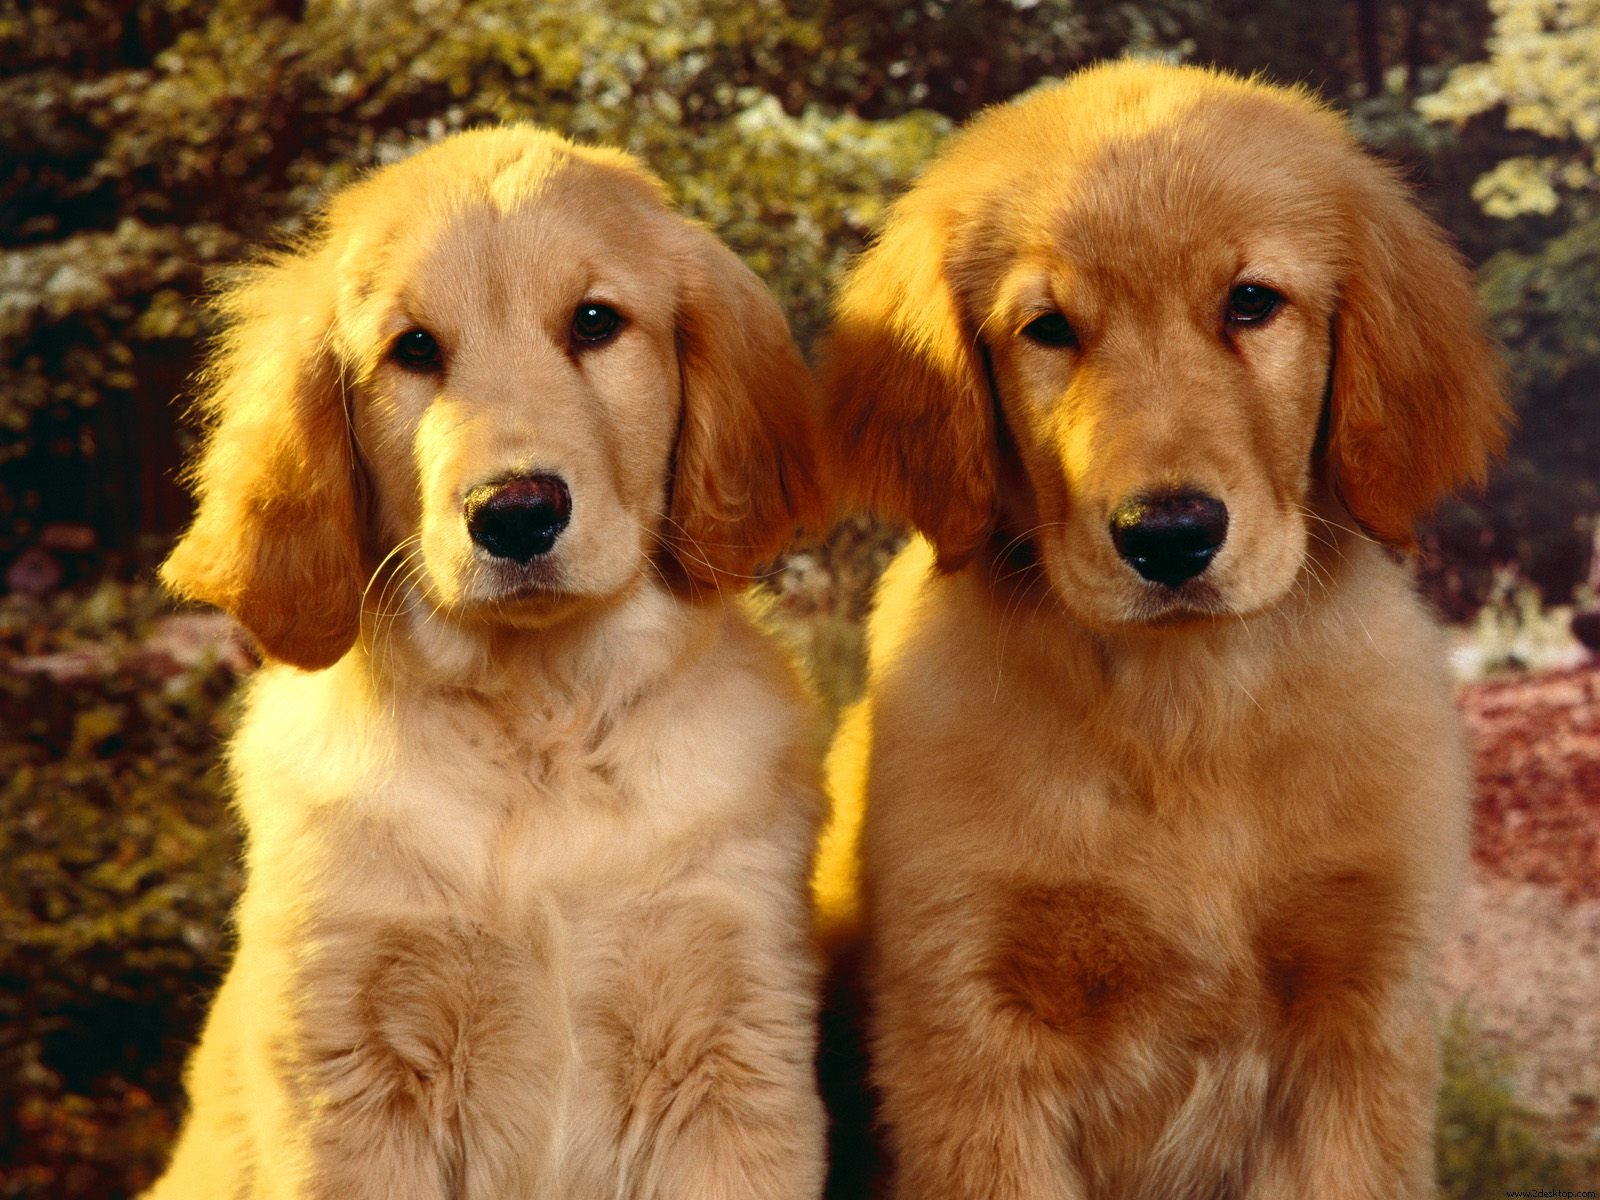 Dog Wallpapers Album: Golden Retriever Puppy Photos